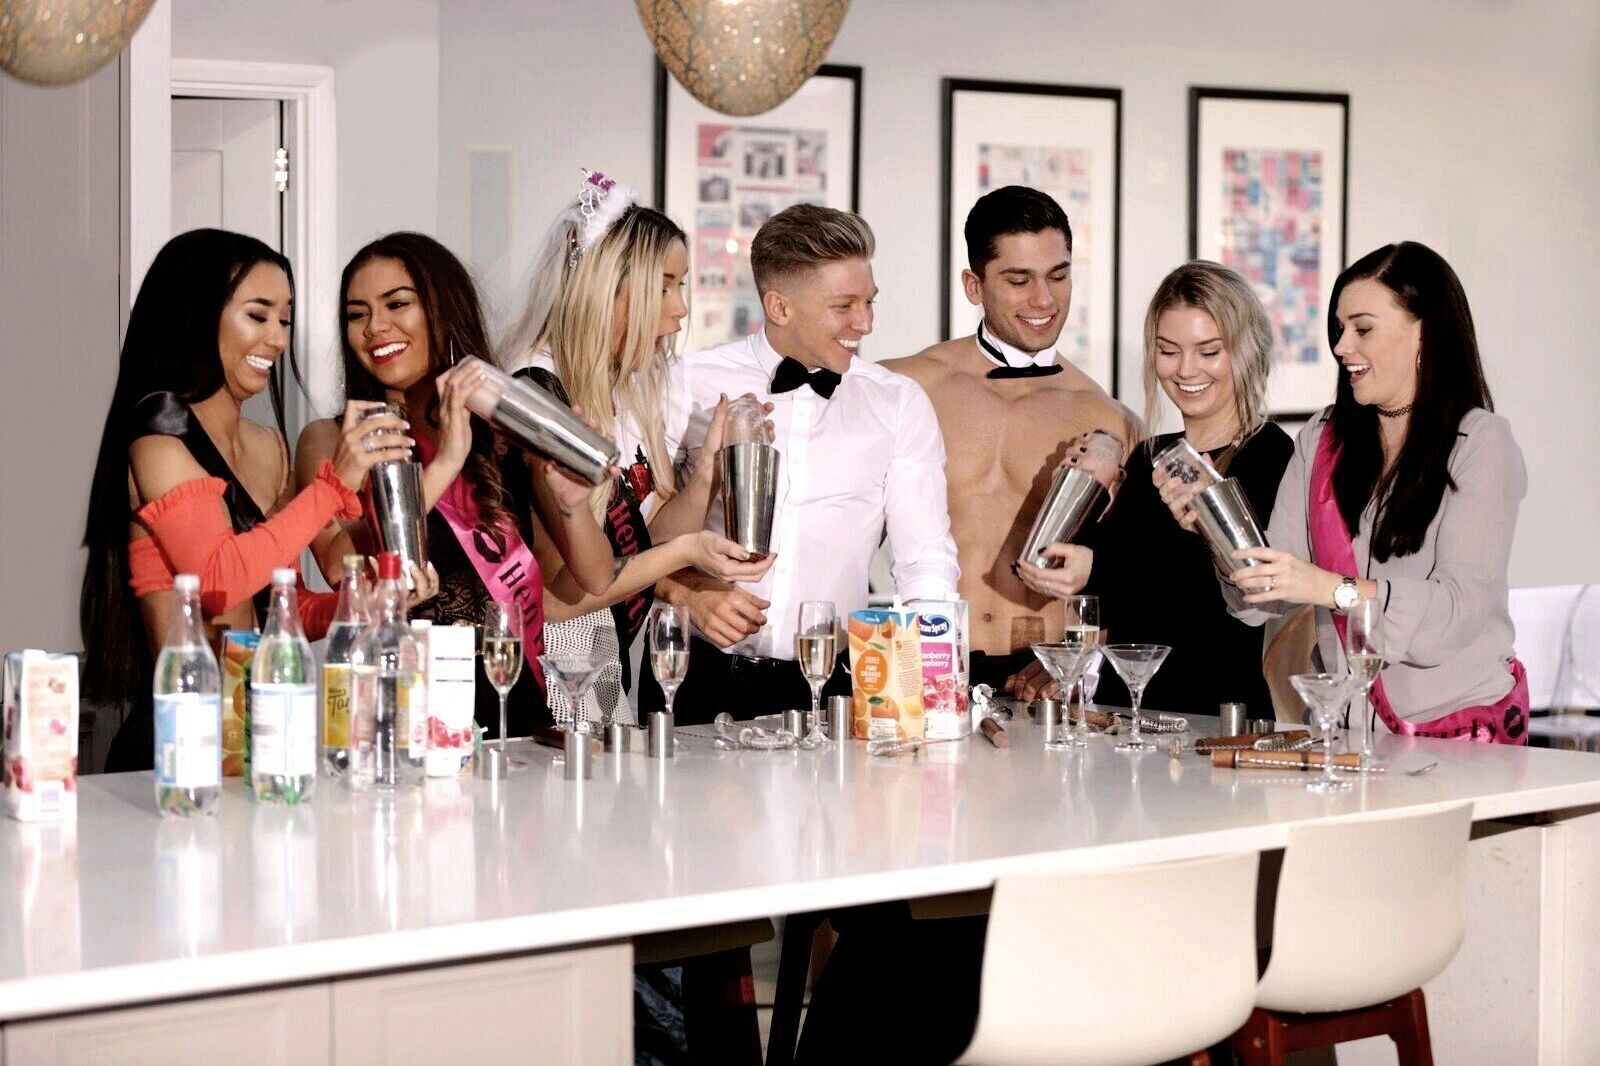 Classy hen do idea cocktail masterclass